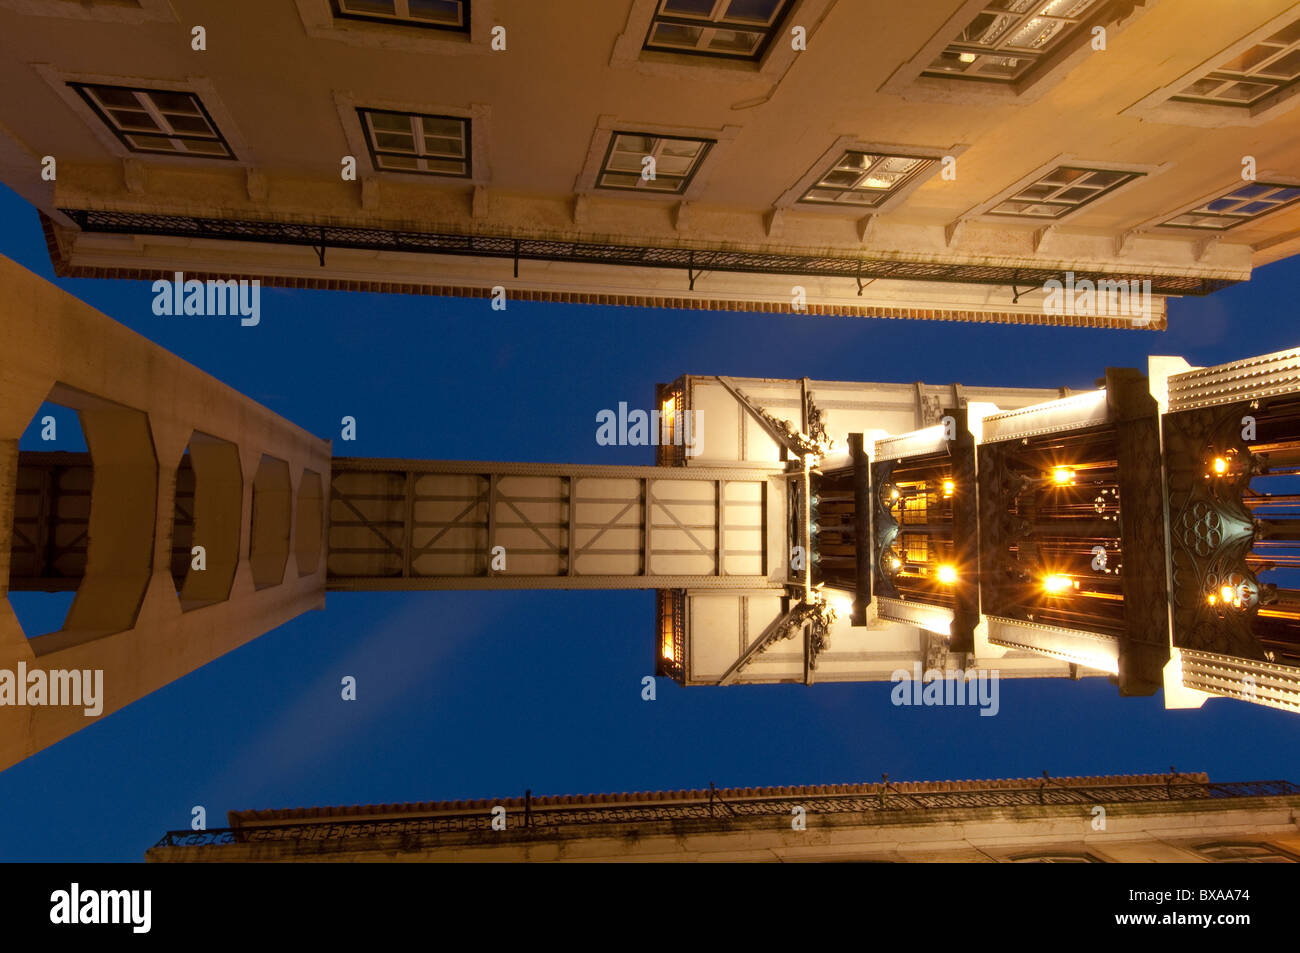 Elevador de Santa Justa (1900 - 1902), vertical lift or elevator, at the end of Rua Santa Justa, Lisbon Portugal - Stock Image